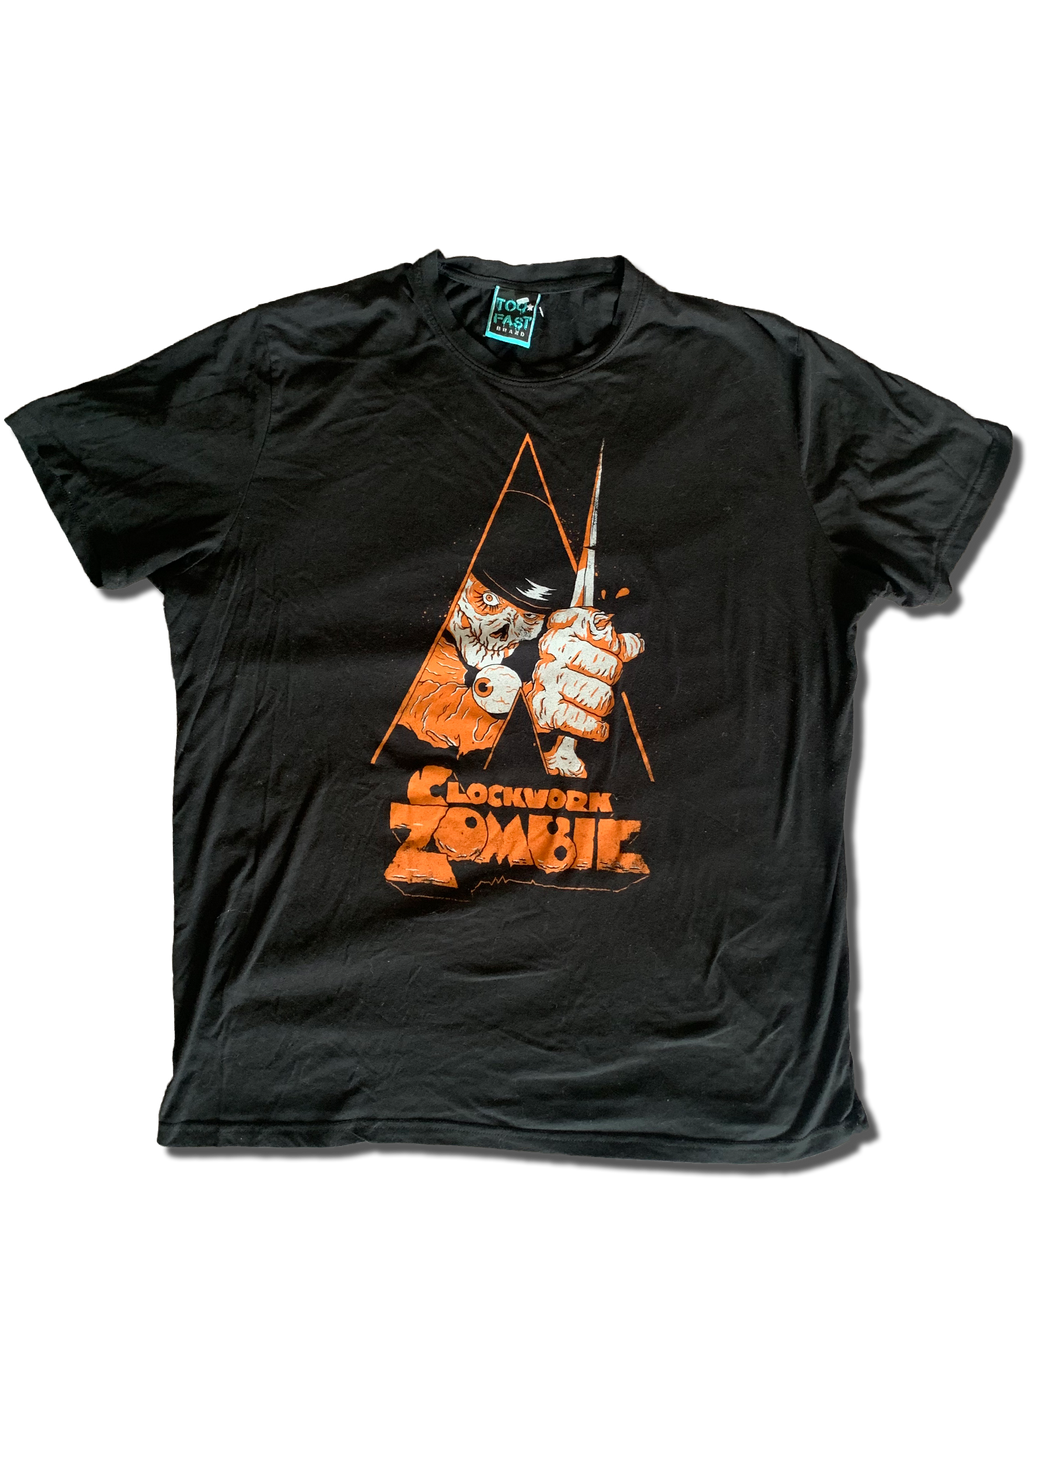 A Clockwork Orange Zombie T-Shirt